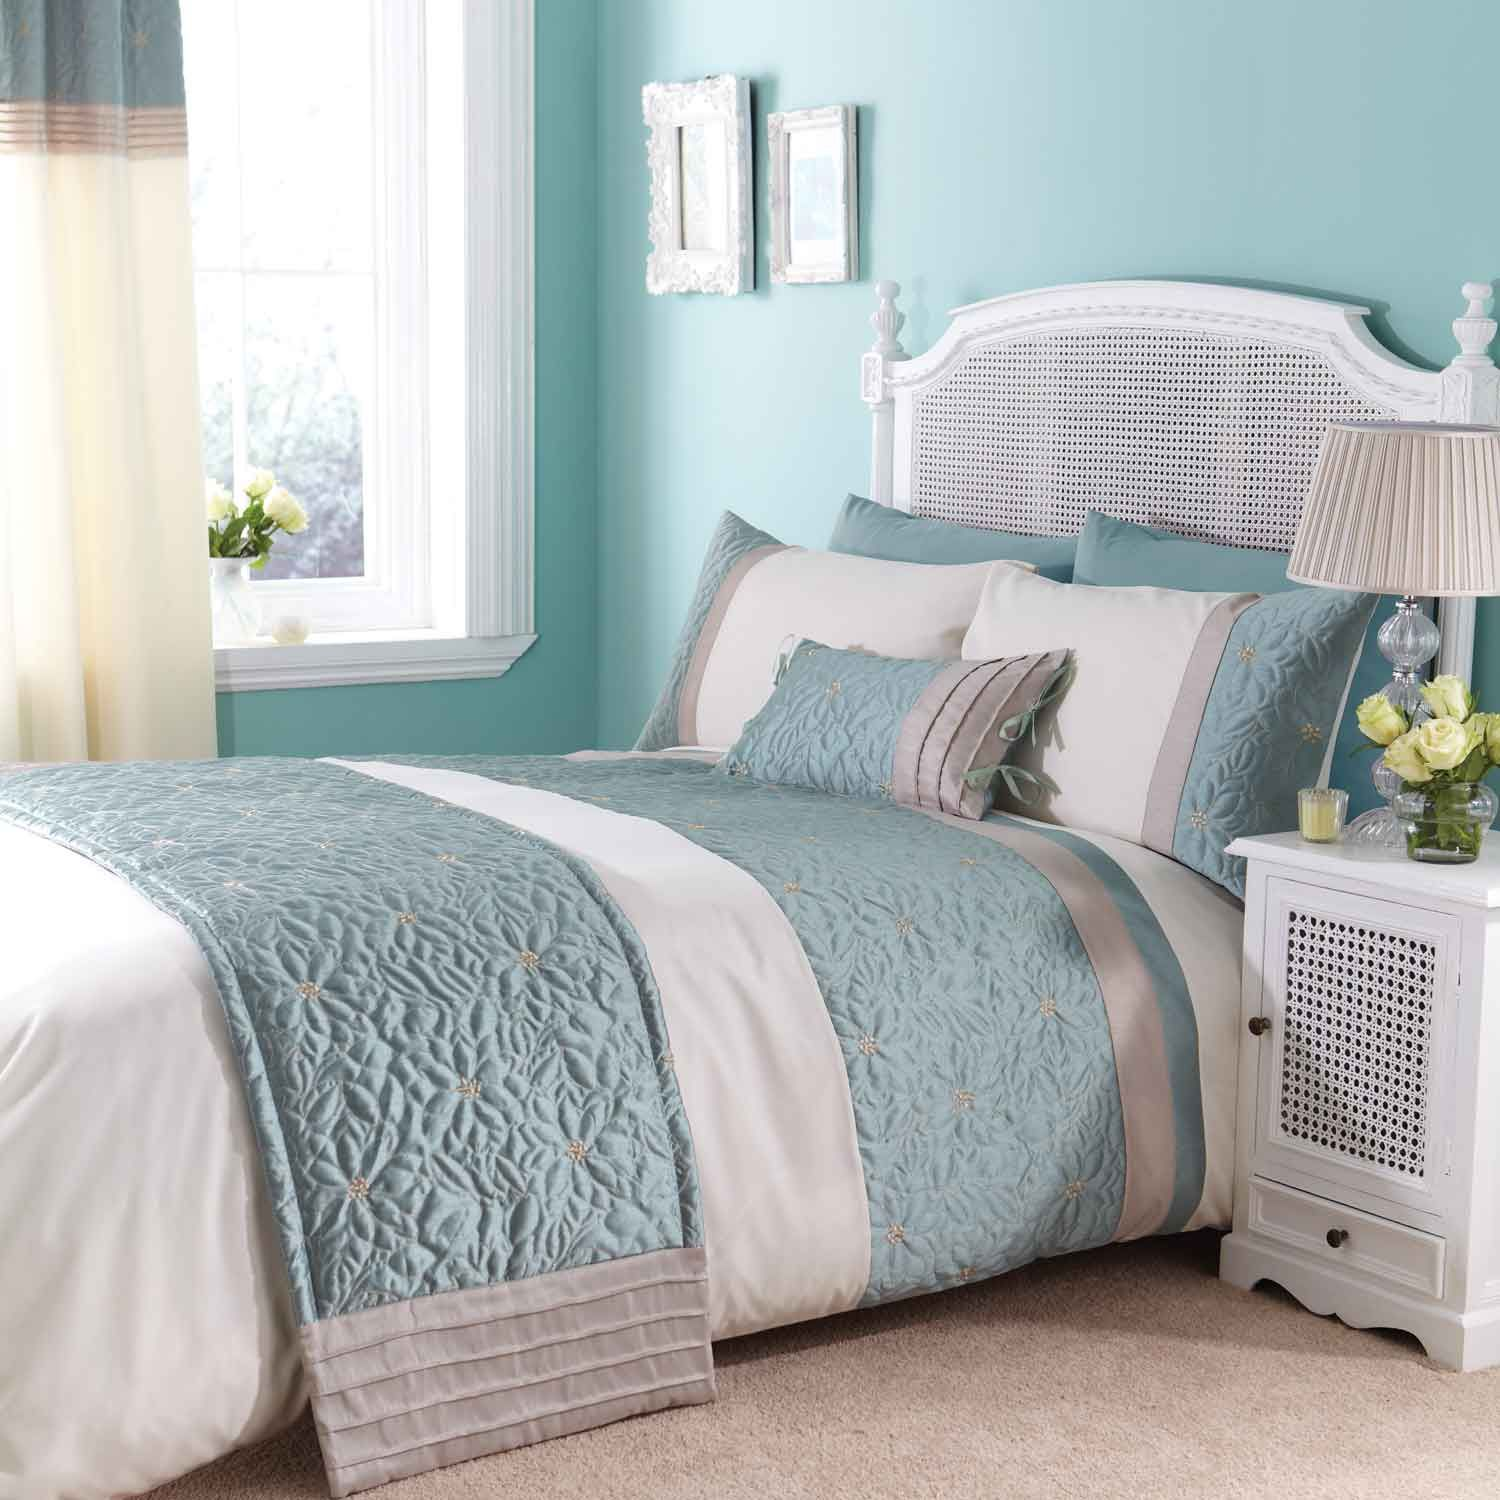 gray and turquoise bedroom | house beautifull living rooms ideas